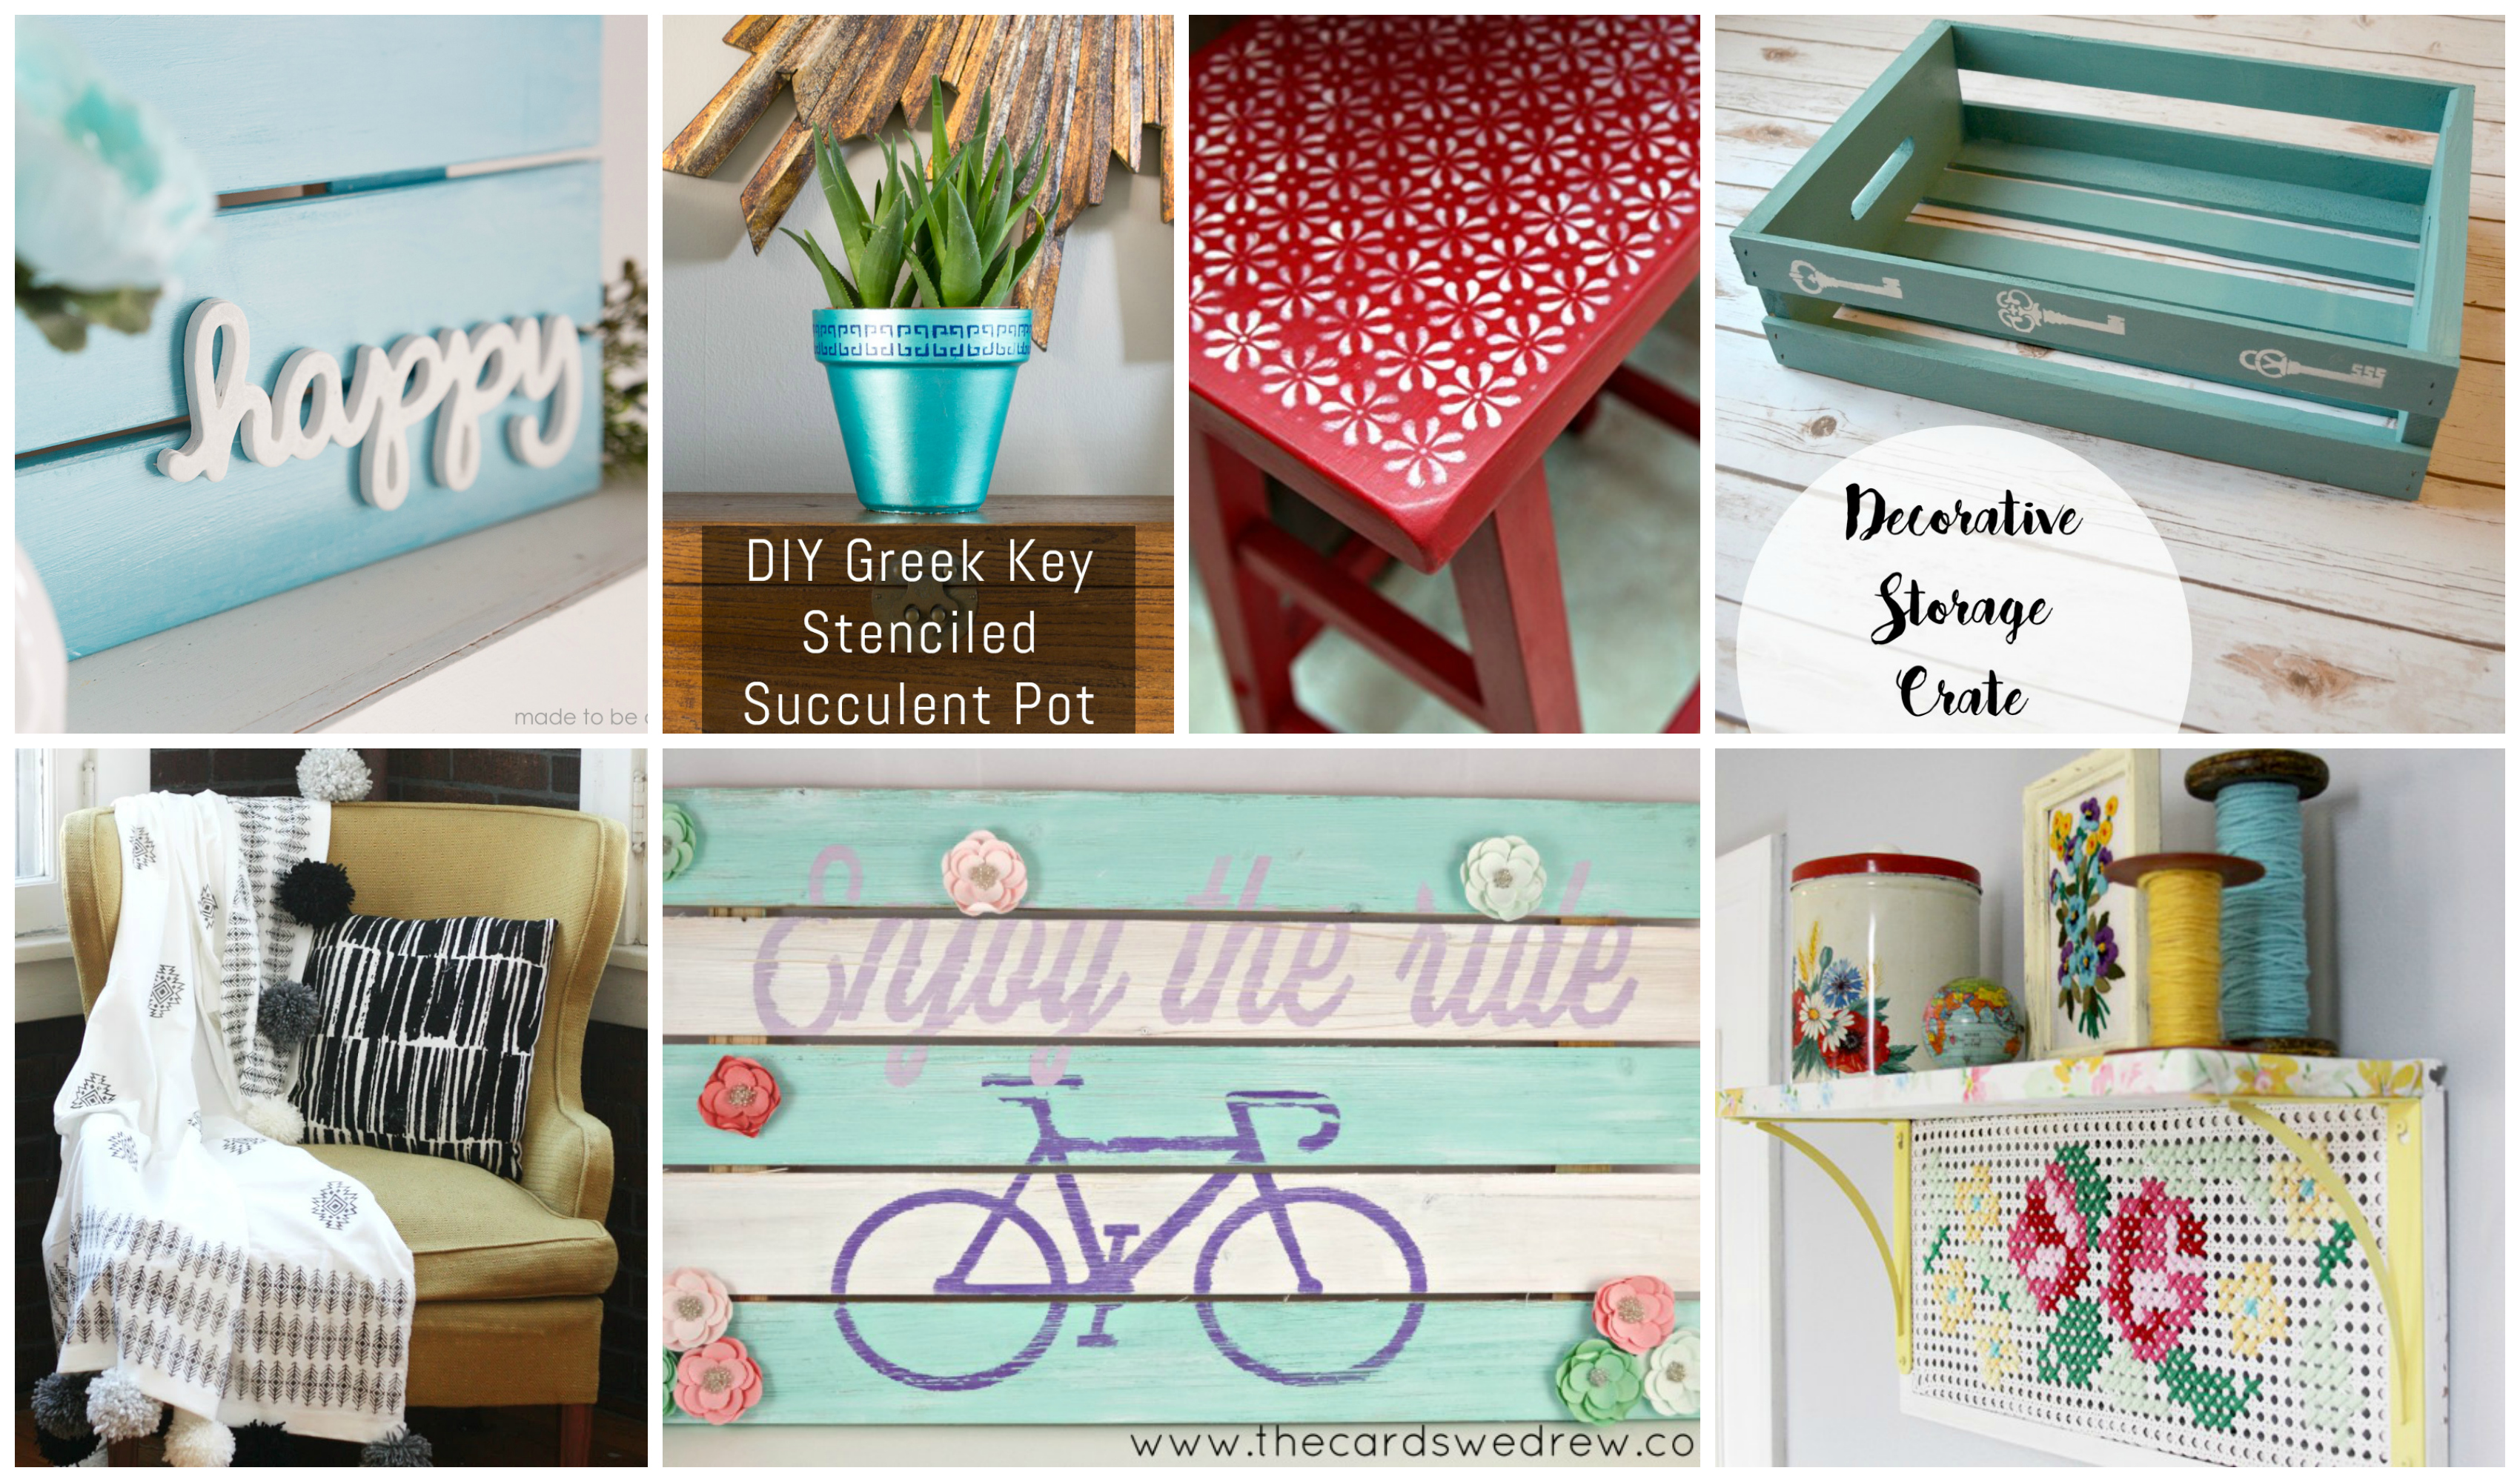 Plaid Creators February Round Up: 10 Beautiful DIY Projects Inspired by 2016 Craft Trends